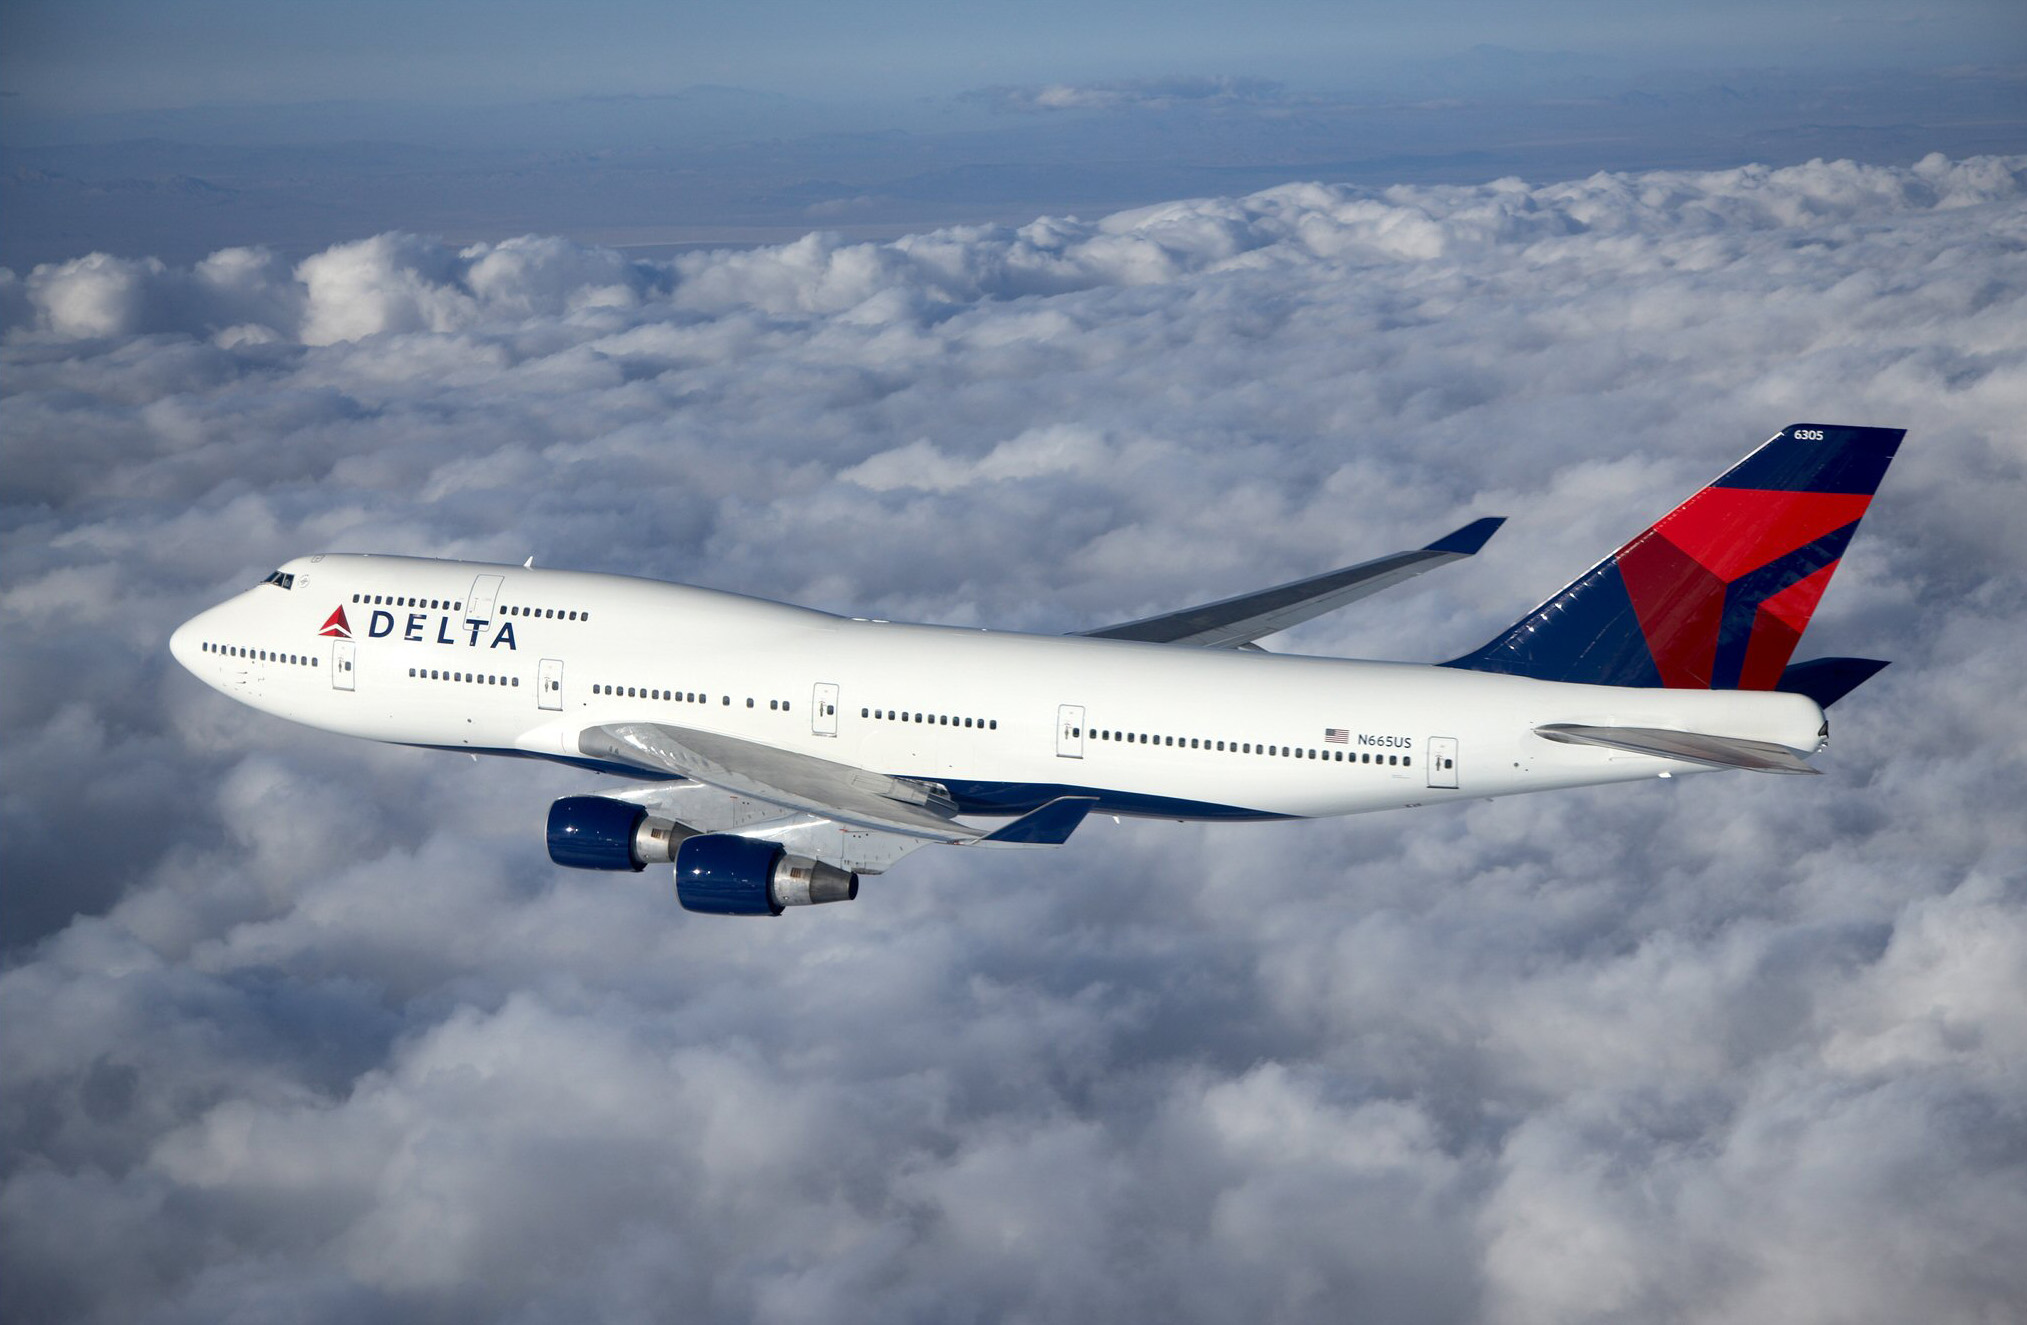 Delta Air Lines, Inc. (NYSE:DAL) To Donate 1% Of Its Profits To Charity